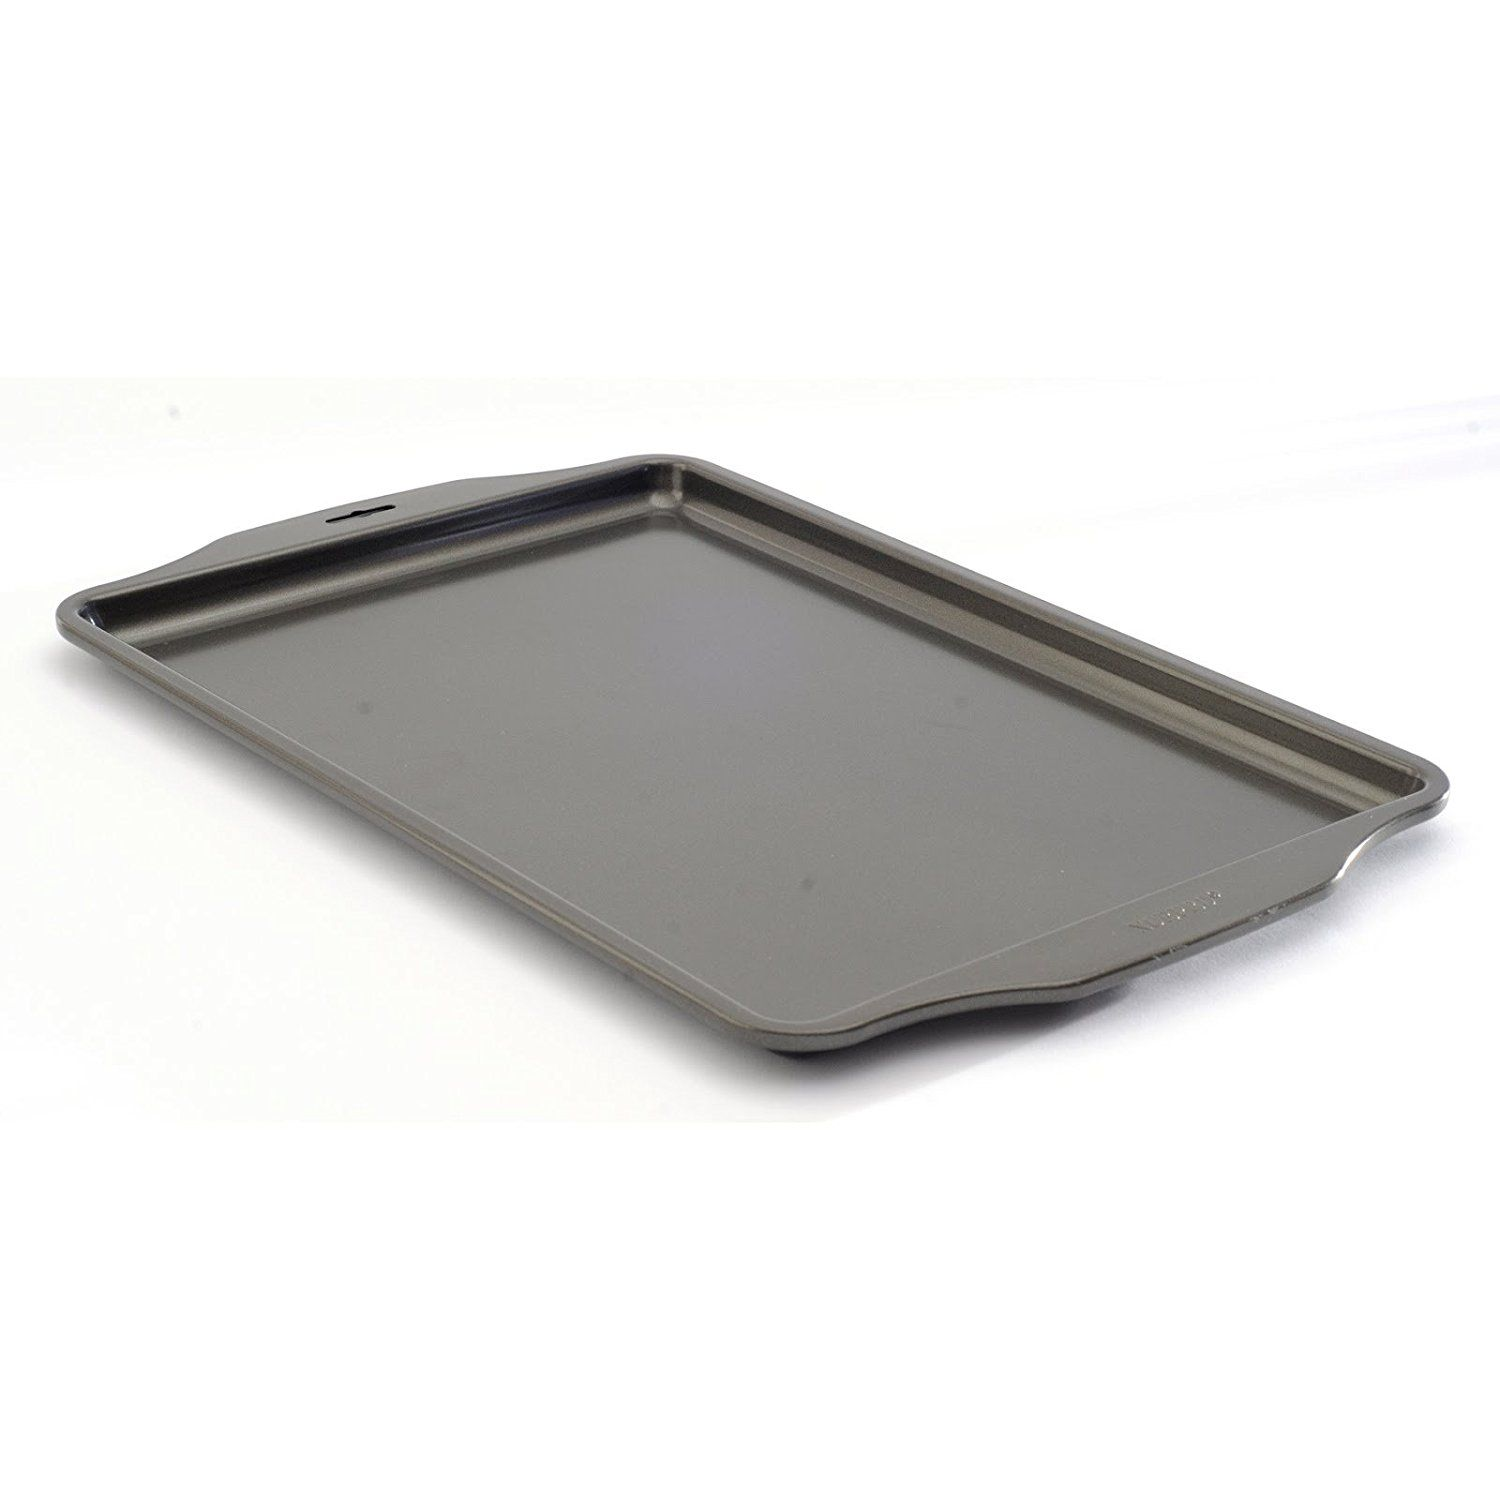 Norpro Nonstick 10 Inch X 15 Inch Cookie Sheet Jelly Roll Pan More Forbidden Discounts At The Link Of Image Bakin Jelly Roll Pan Norpro Baking Necessities